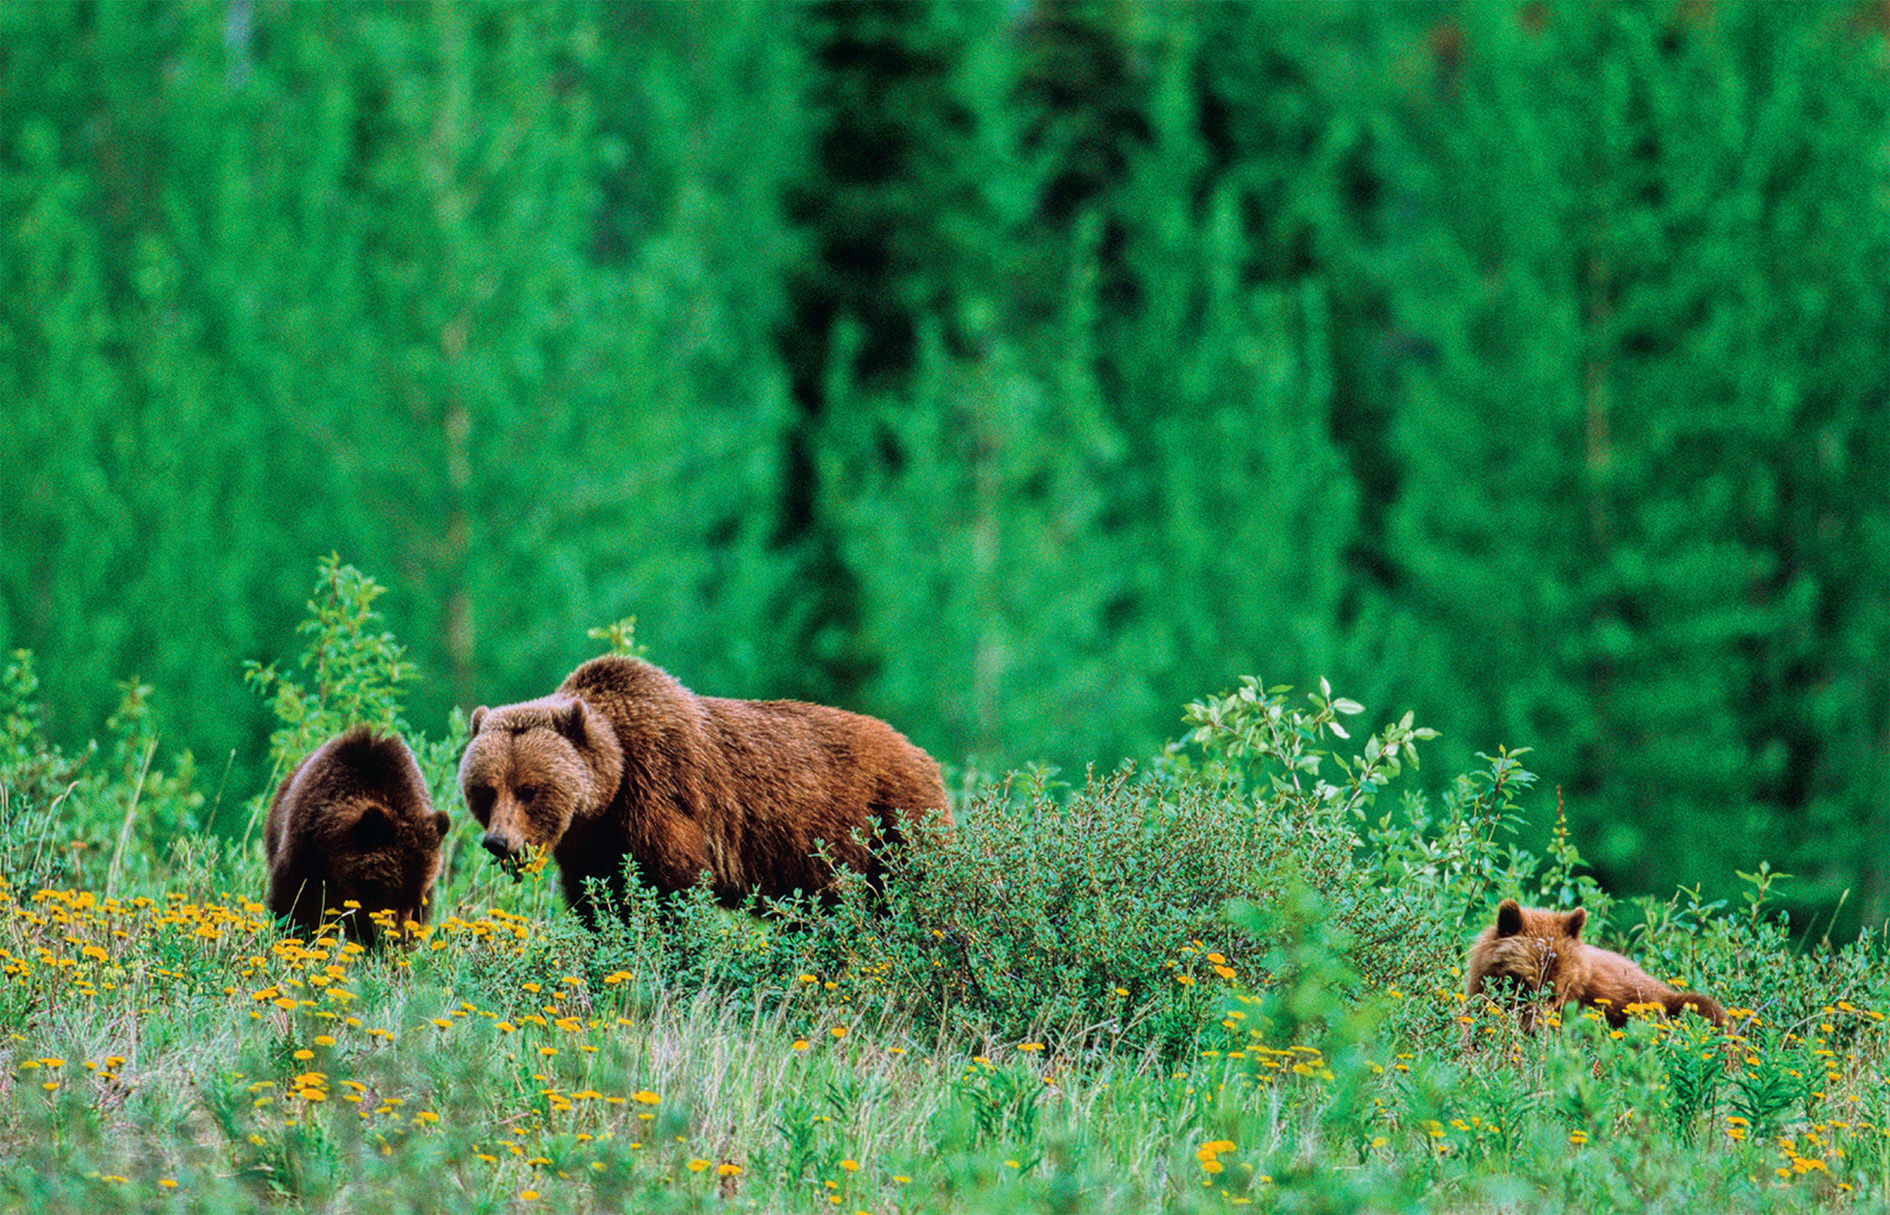 A grizzly bear mother and cubs in Canada's northern boreal forest. The boreal makes up 30 per cent of global forest cover and is severely threatened by climate change and resource extraction.